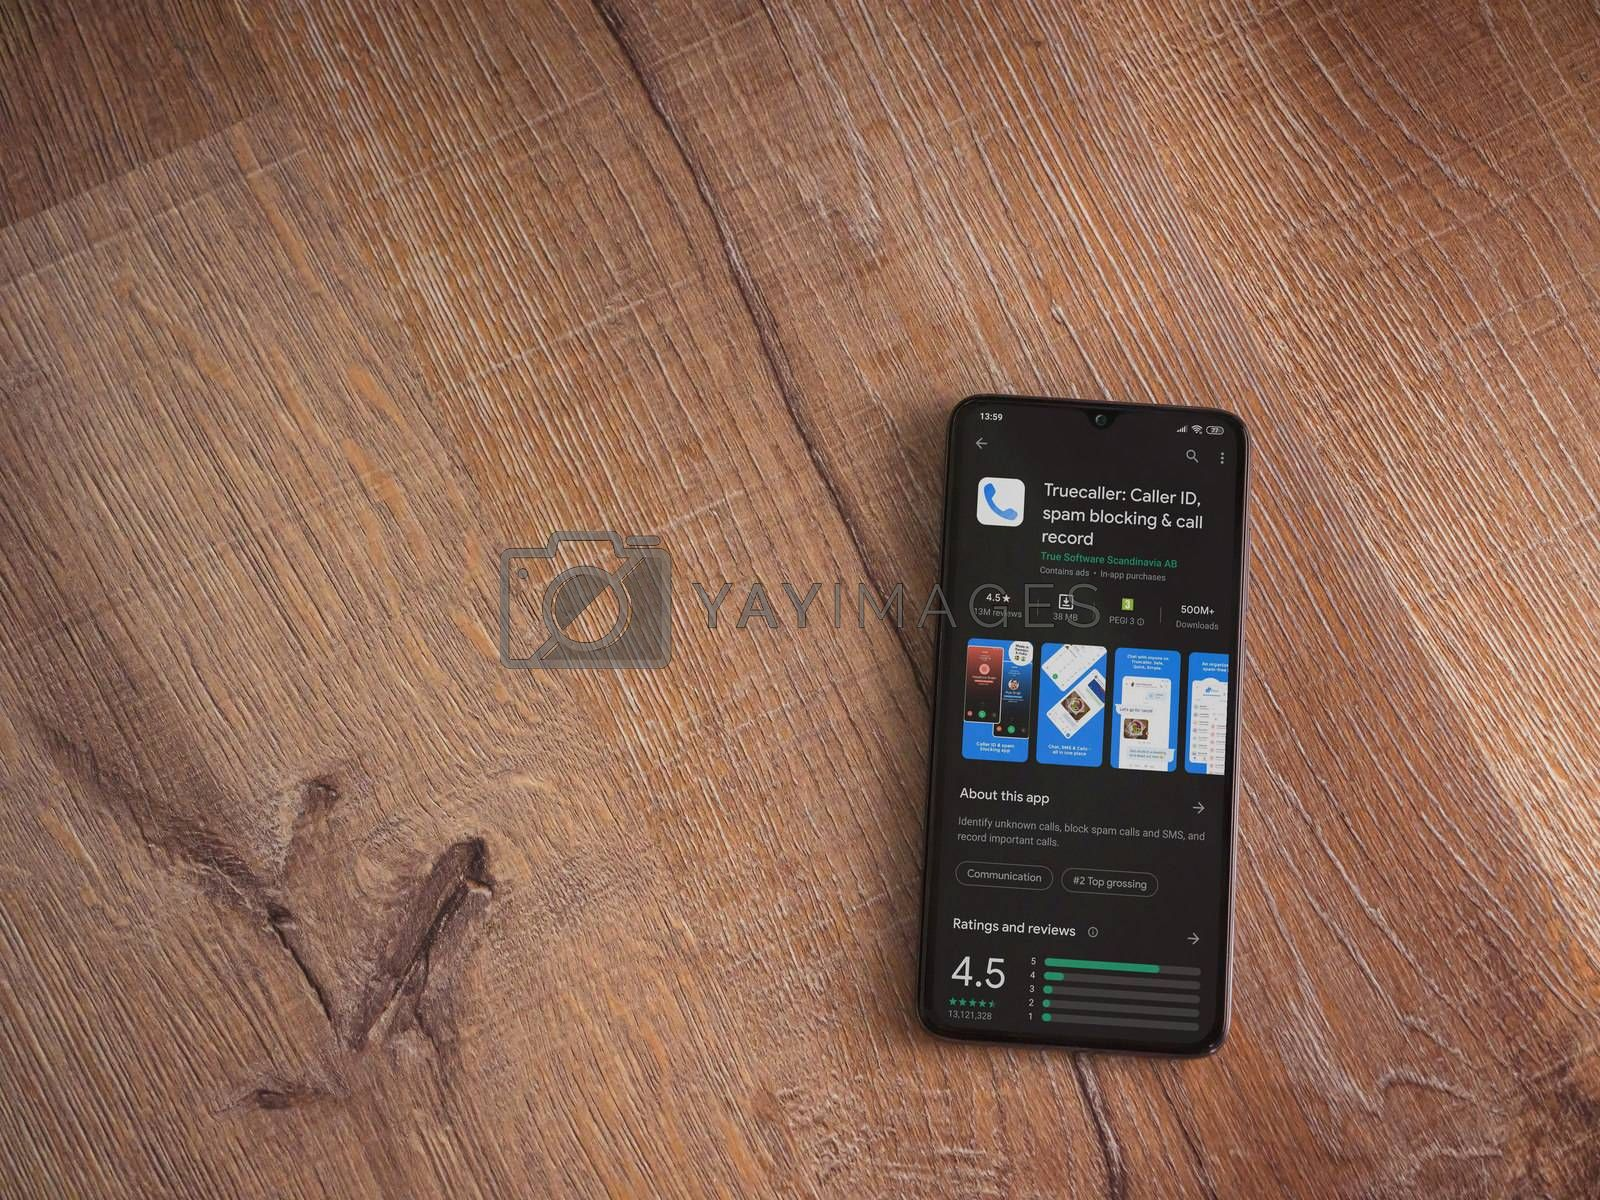 Lod, Israel - July 8, 2020: Truecaller app play store page on the display of a black mobile smartphone on wooden background. Top view flat lay with copy space.